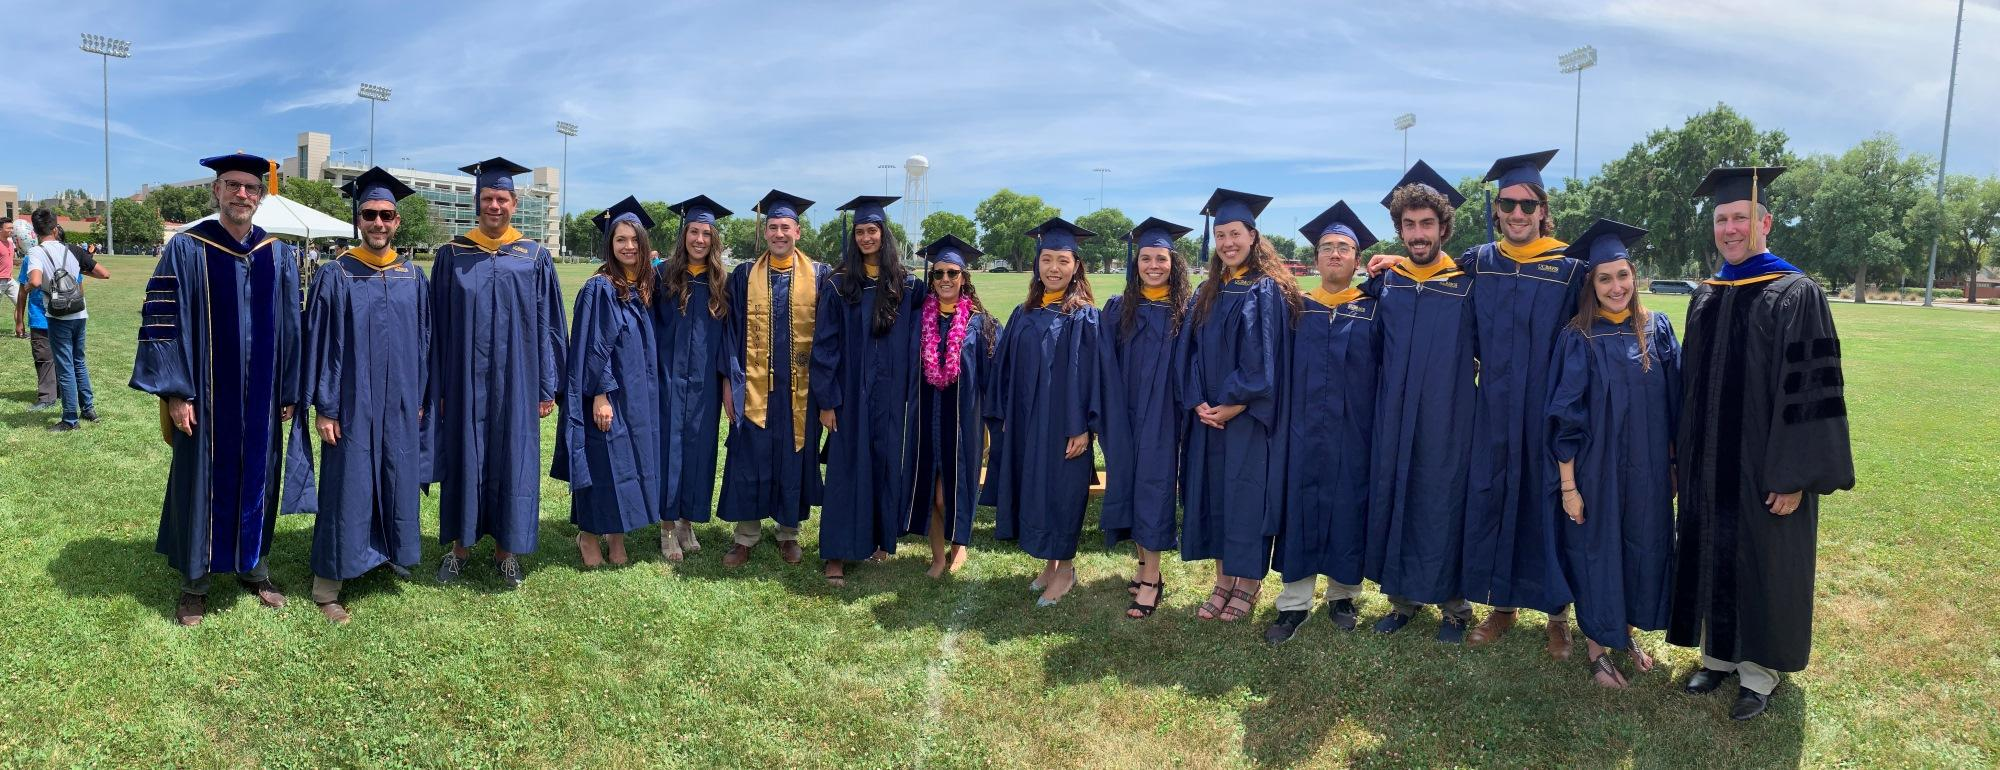 Graduate Group of 2019